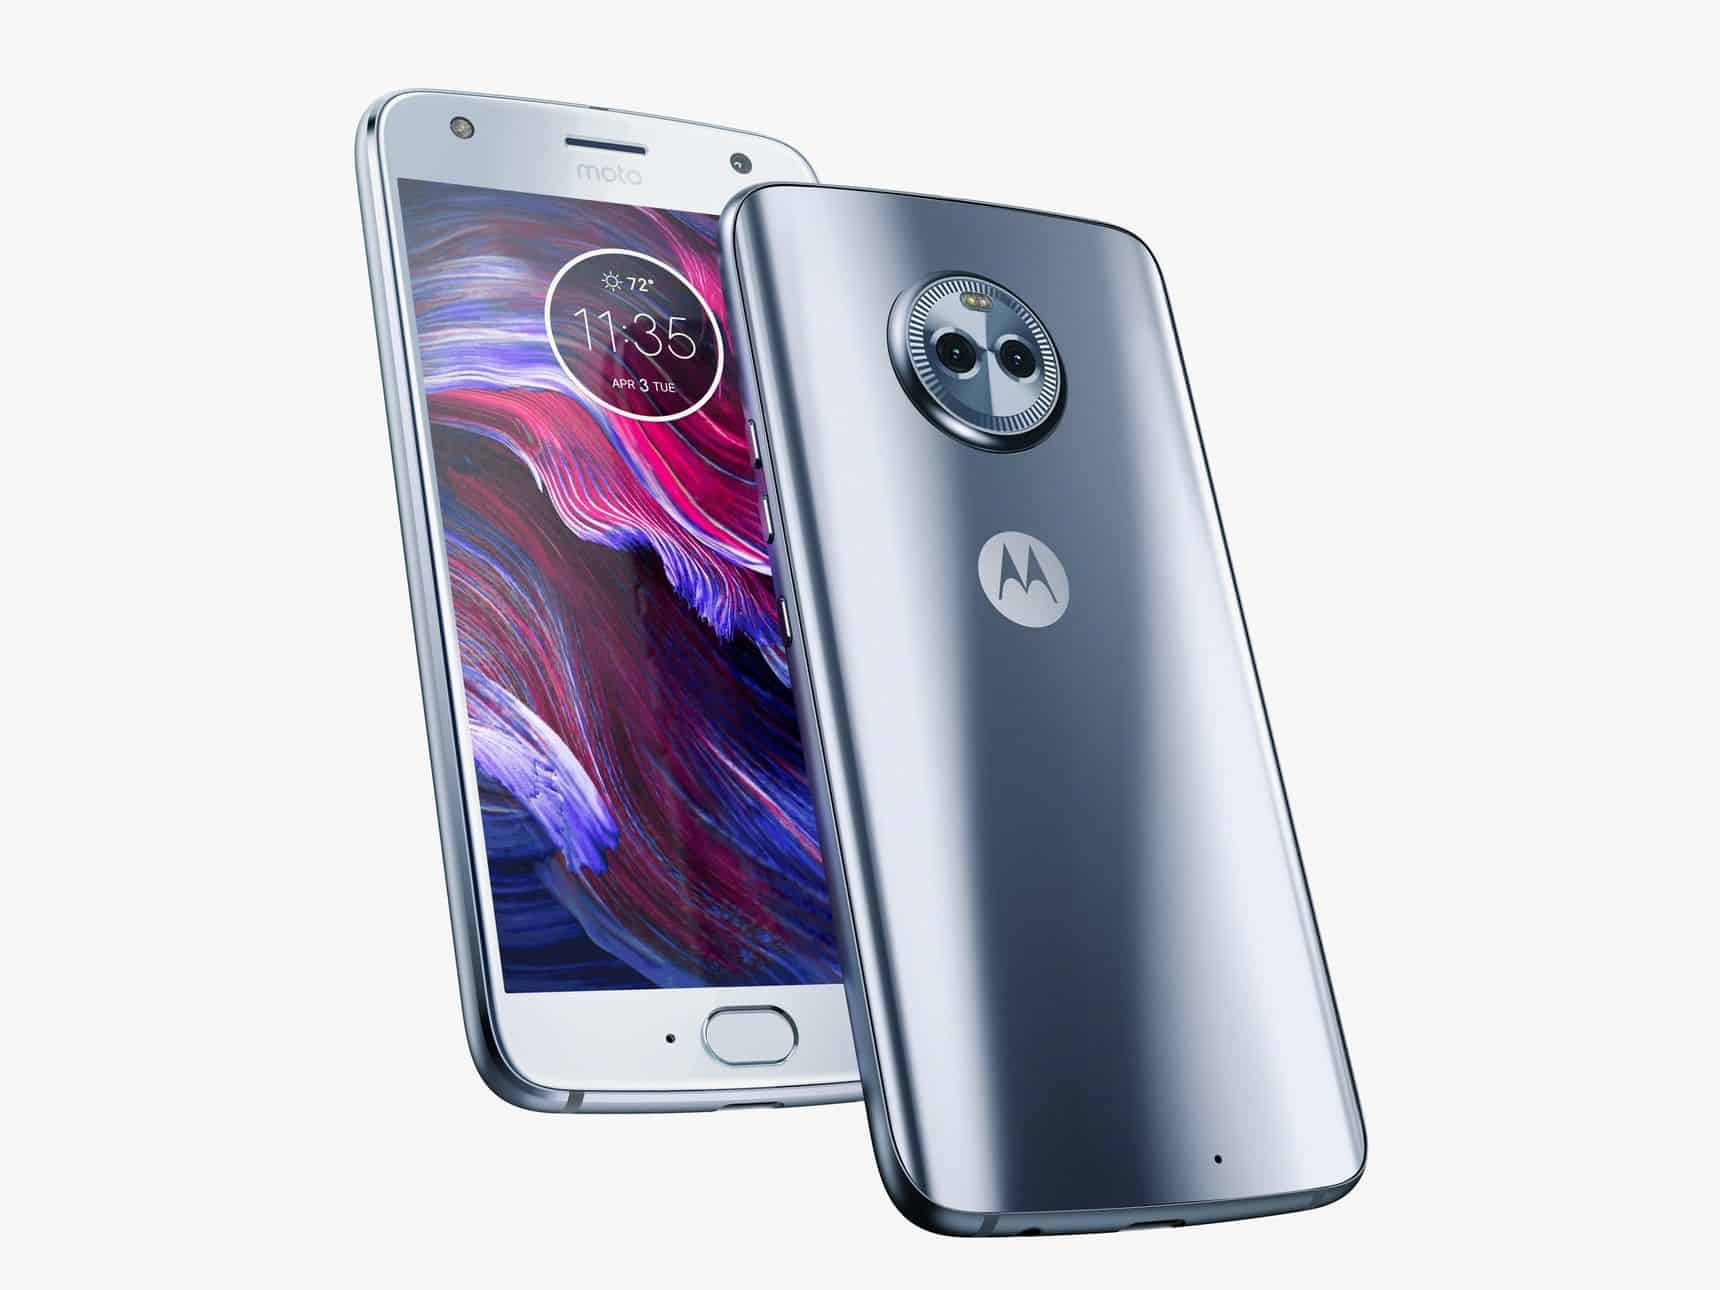 amazon Moto X4 reviews Moto X4 on amazon newest Moto X4 prices of Moto X4 Moto X4 deals best deals on Moto X4 buying a Moto X4 lastest Moto X4 what is a Moto X4 Moto X4 at amazon where to buy Moto X4 where can i you get a Moto X4 online purchase Moto X4 Moto X4 sale off Moto X4 discount cheapest Moto X4 Moto X4 for sale Moto X4 products Moto X4 tutorial Moto X4 specification Moto X4 features Moto X4 test Moto X4 series Moto X4 service manual Moto X4 instructions Moto X4 accessories